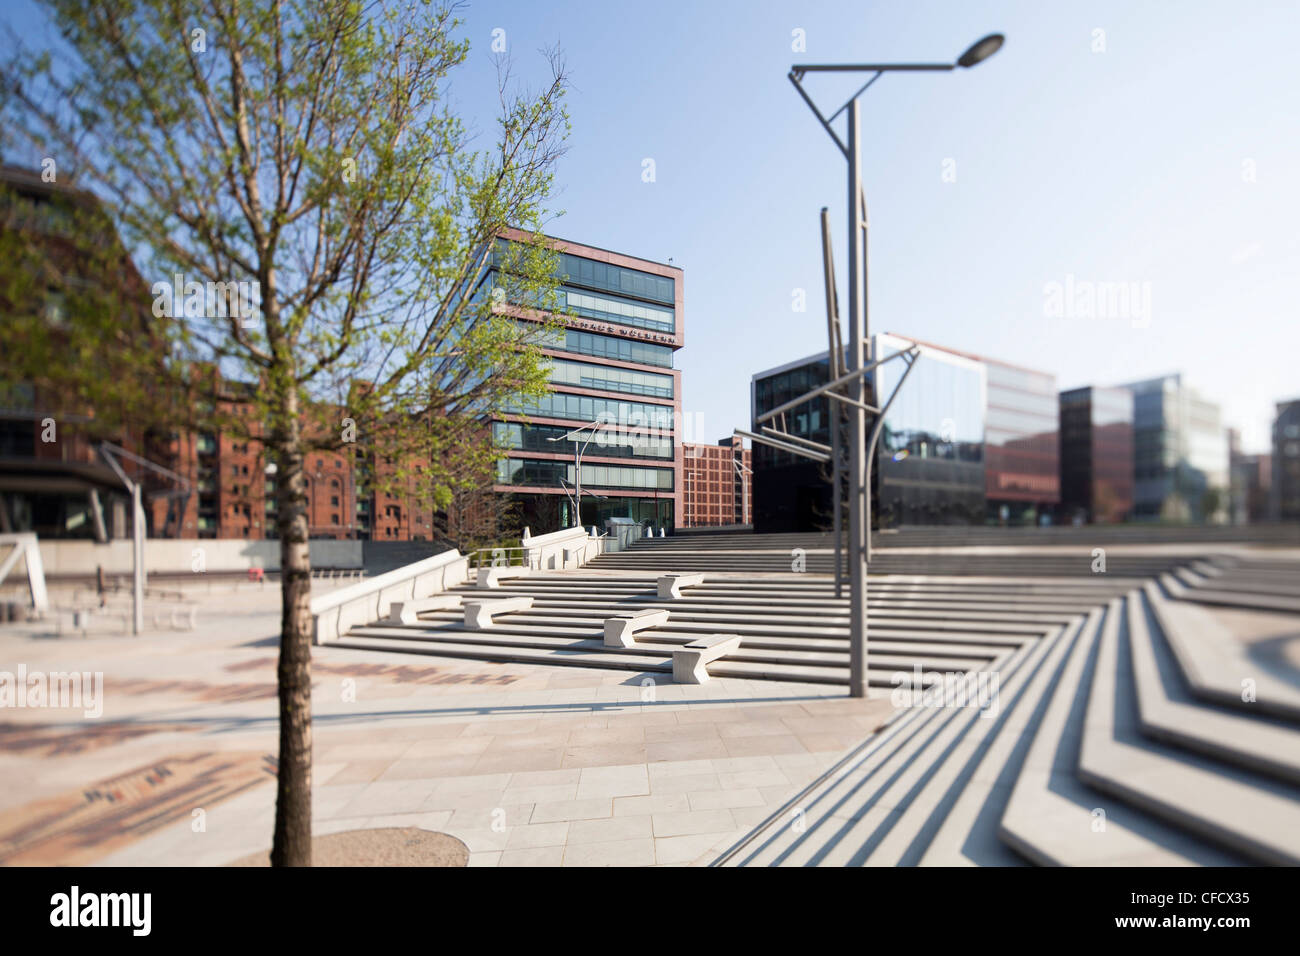 Office building, staircases in foreground, HafenCity, Hamburg, Germany - Stock Image